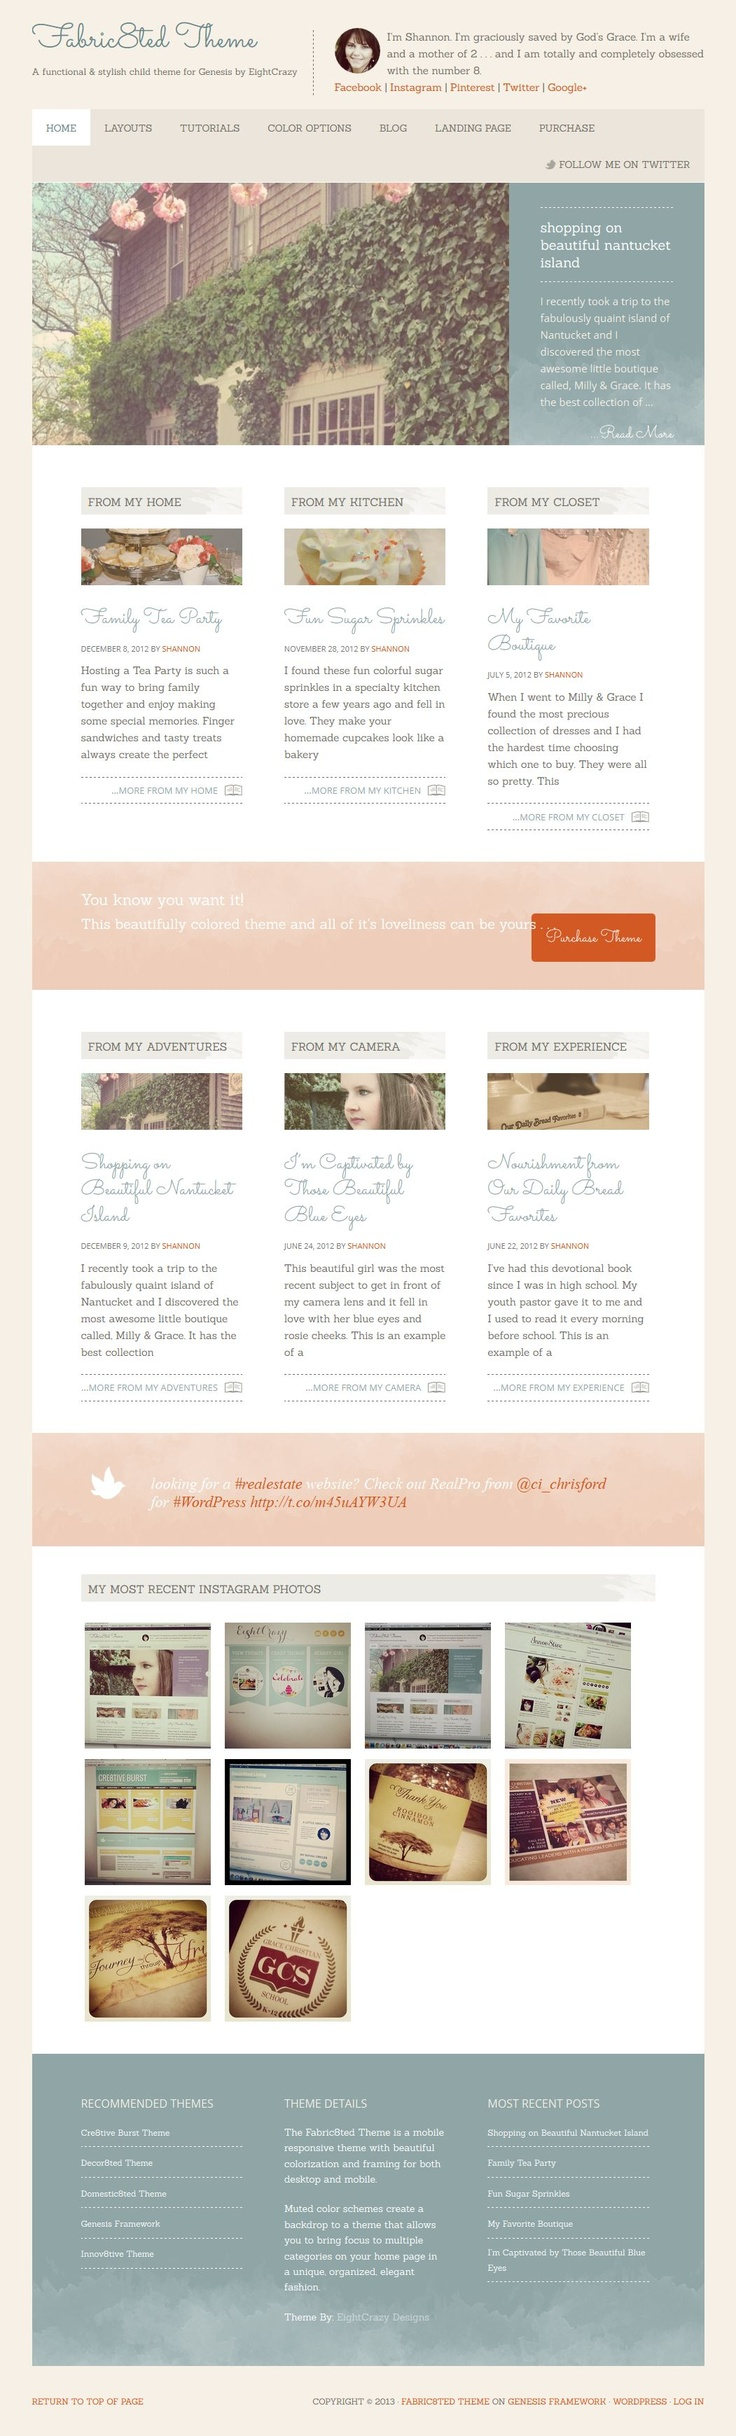 Website soft colors - Studiopress Fabric8ted Is A Responsive Wordpress Theme Suitable For Blogging And Business Websites Fabric8ted Comes Soft Colorswordpress